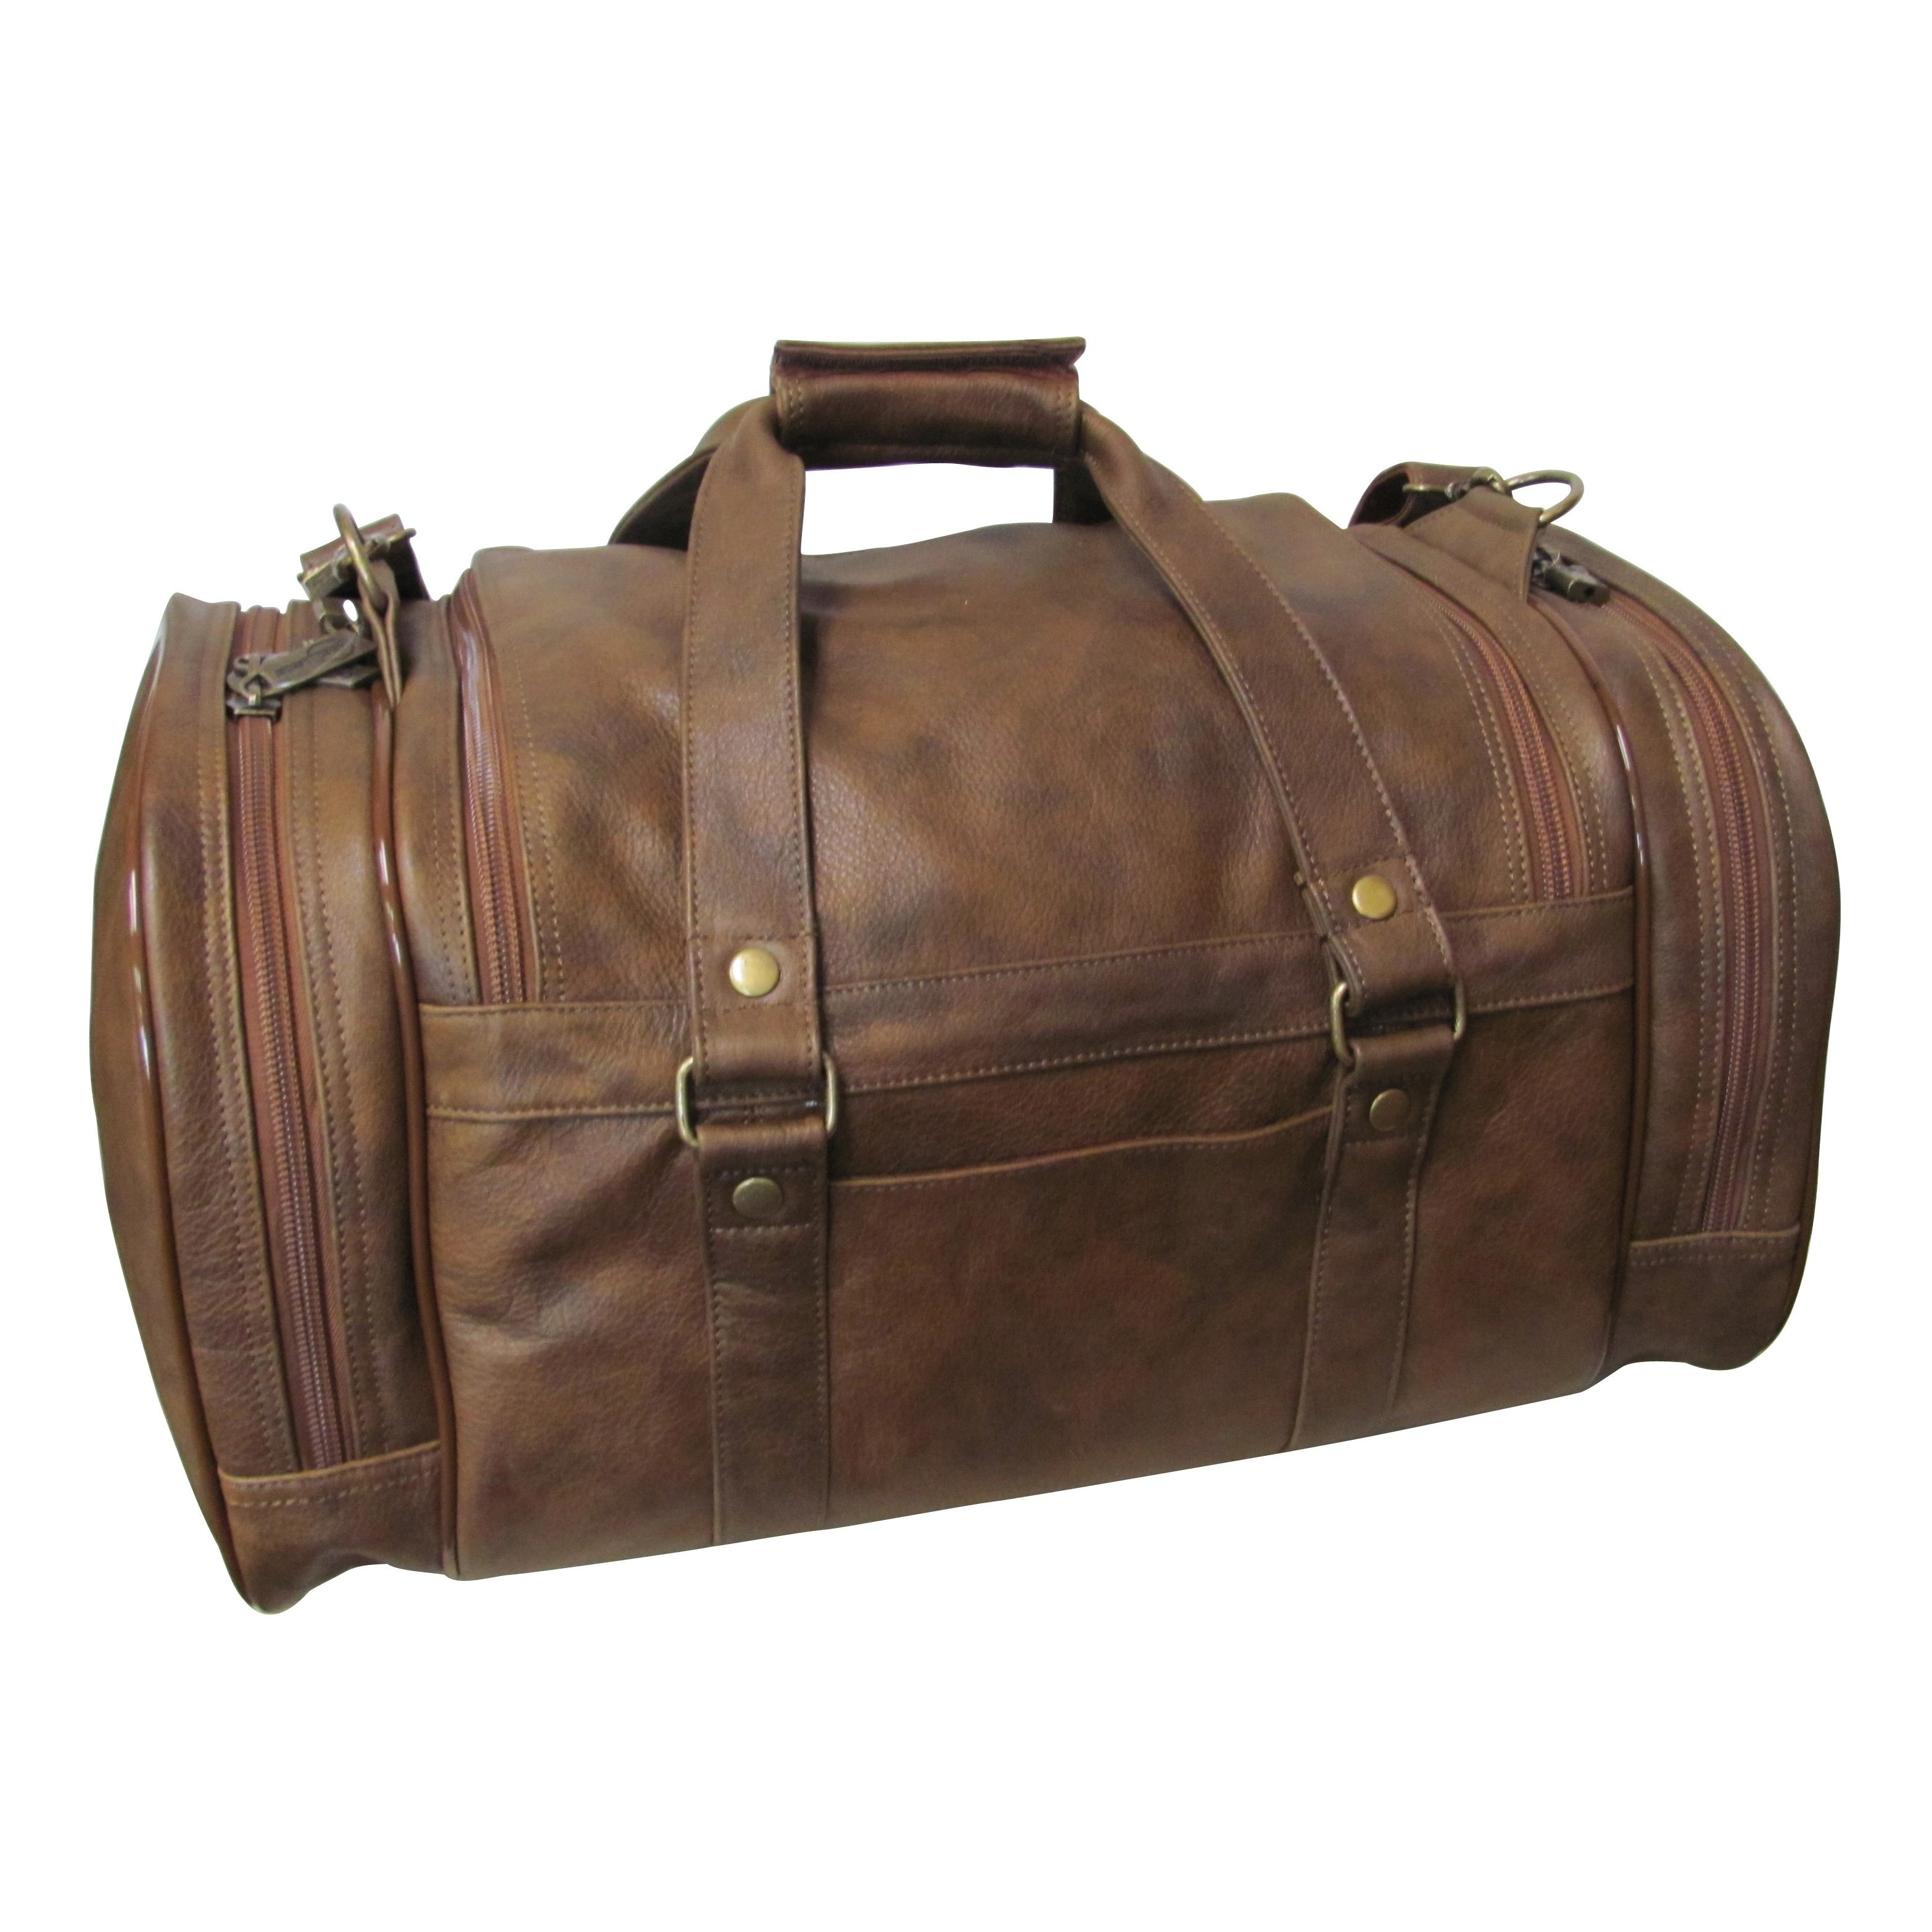 Amerileather 22 Inch Jumbo Carry On Duffel Bag Free Shipping Today 10423238